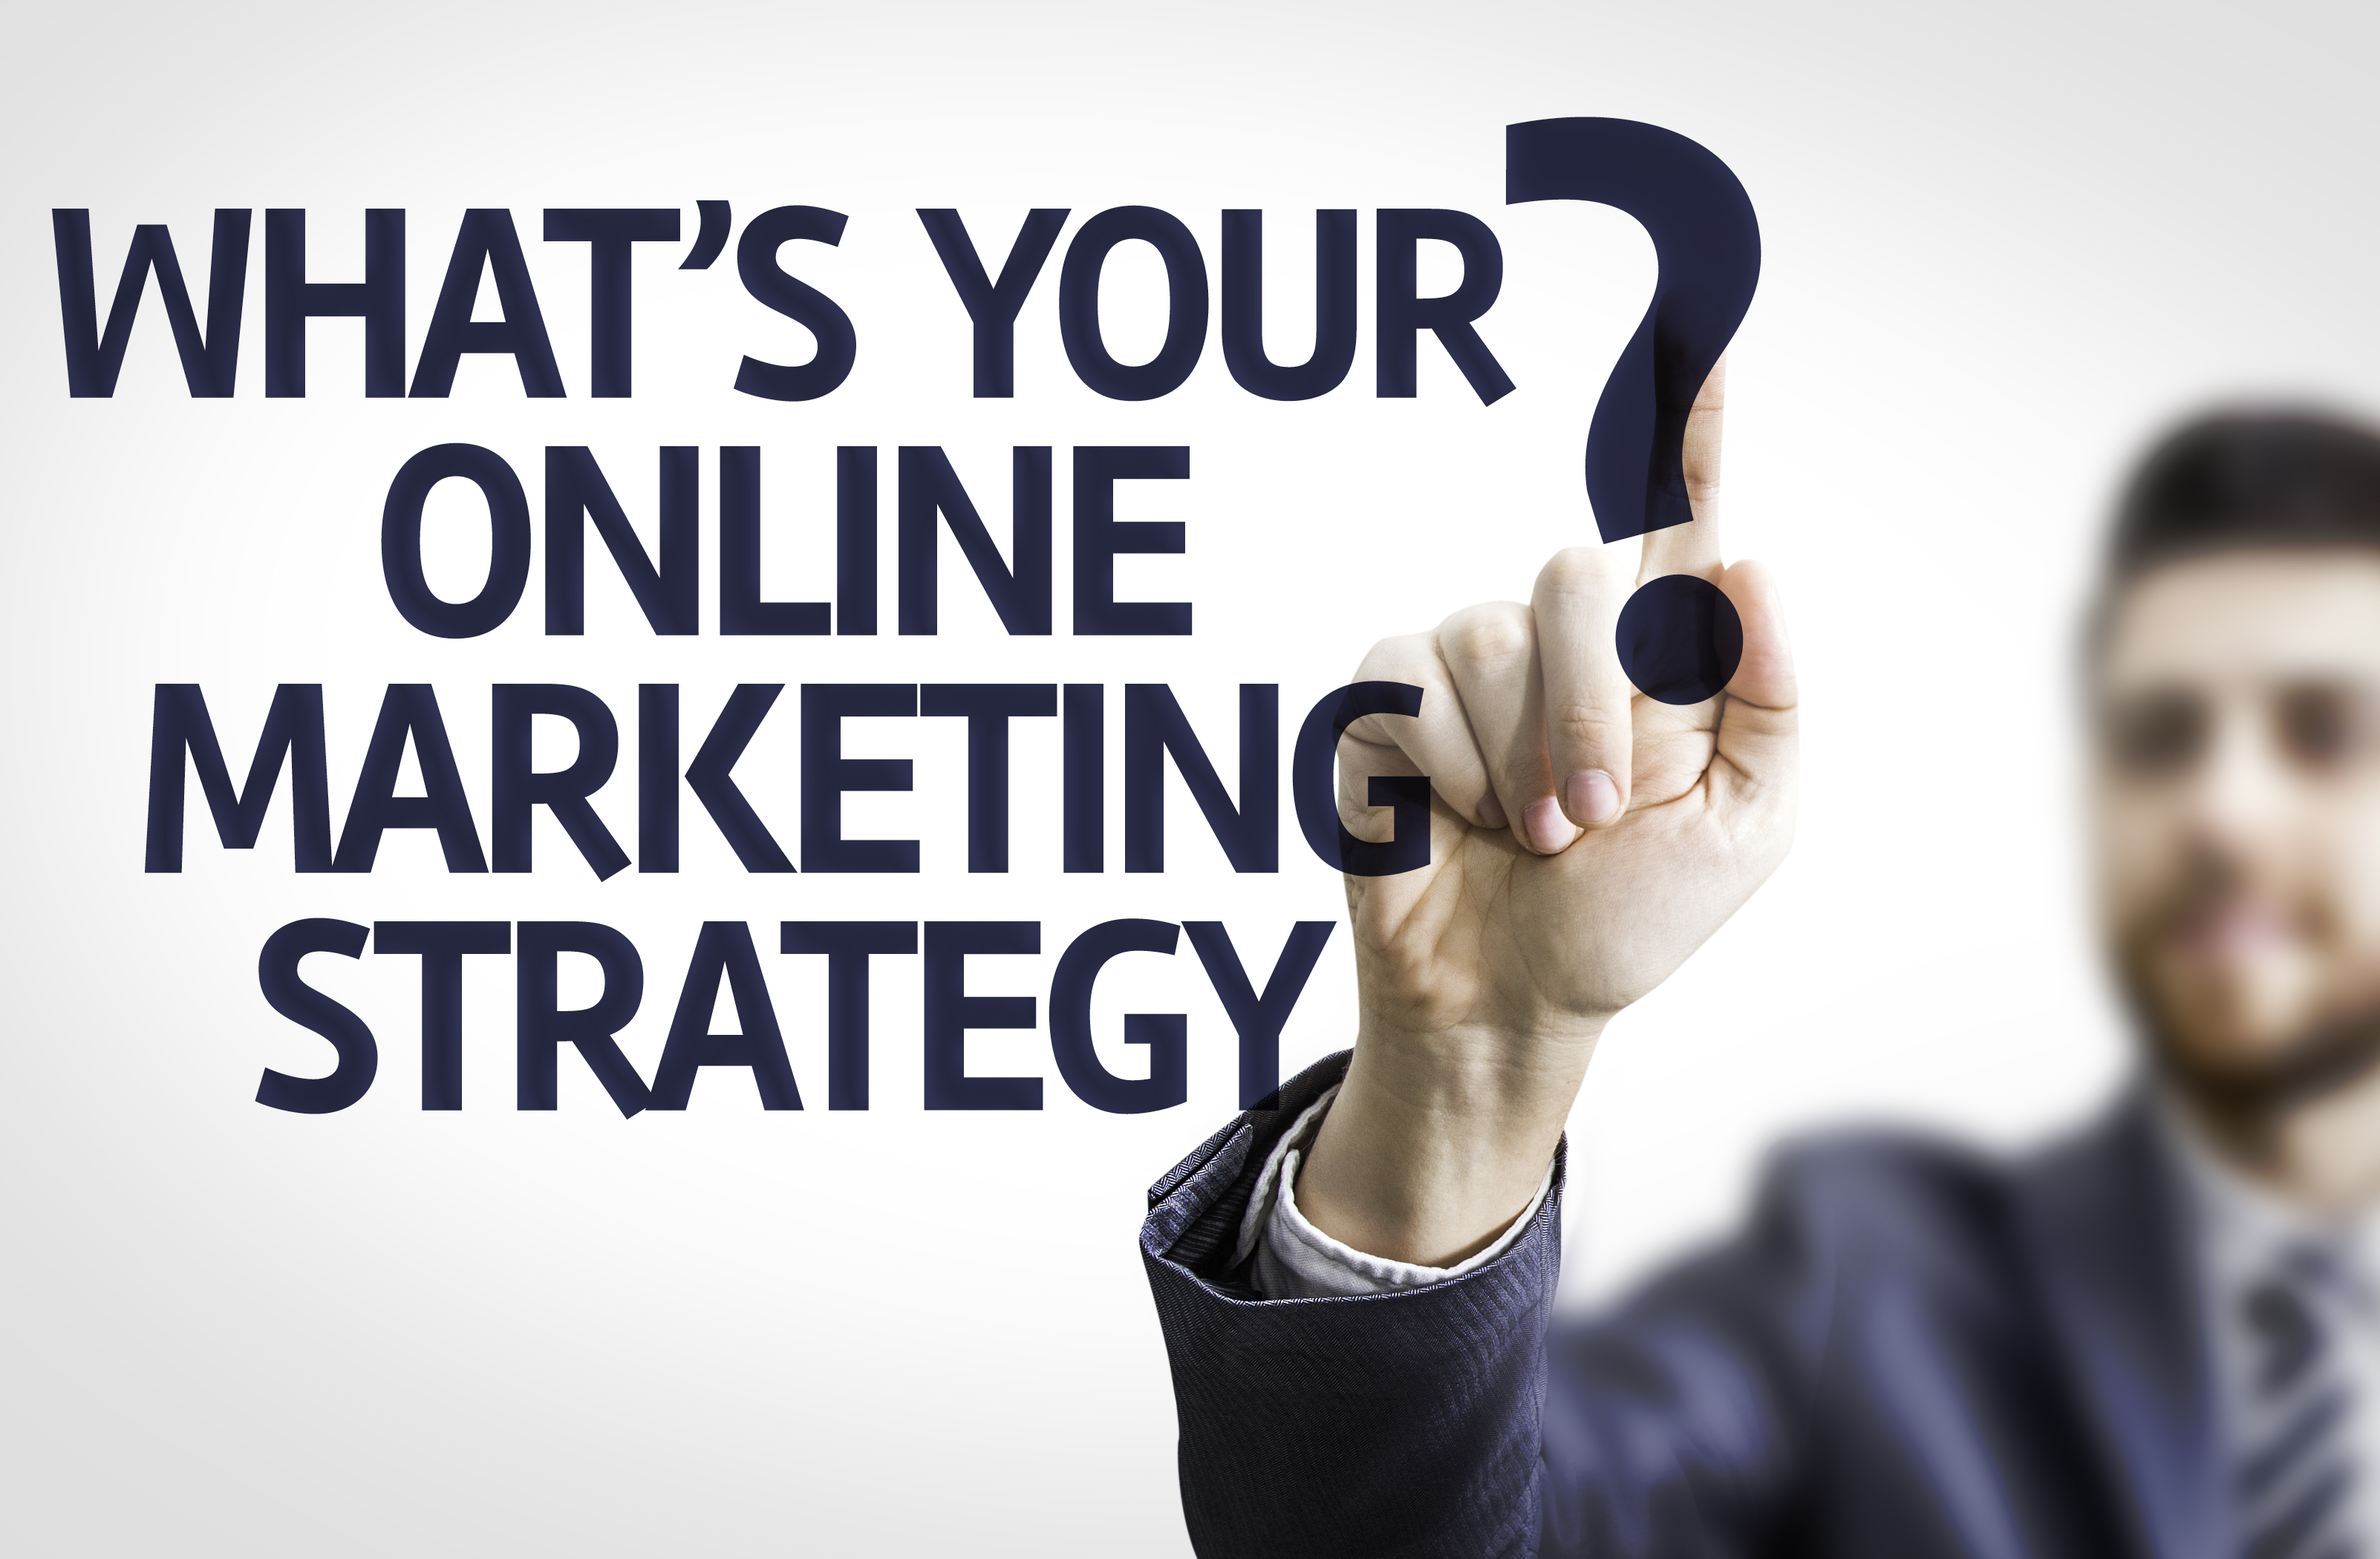 Online marketing strategy